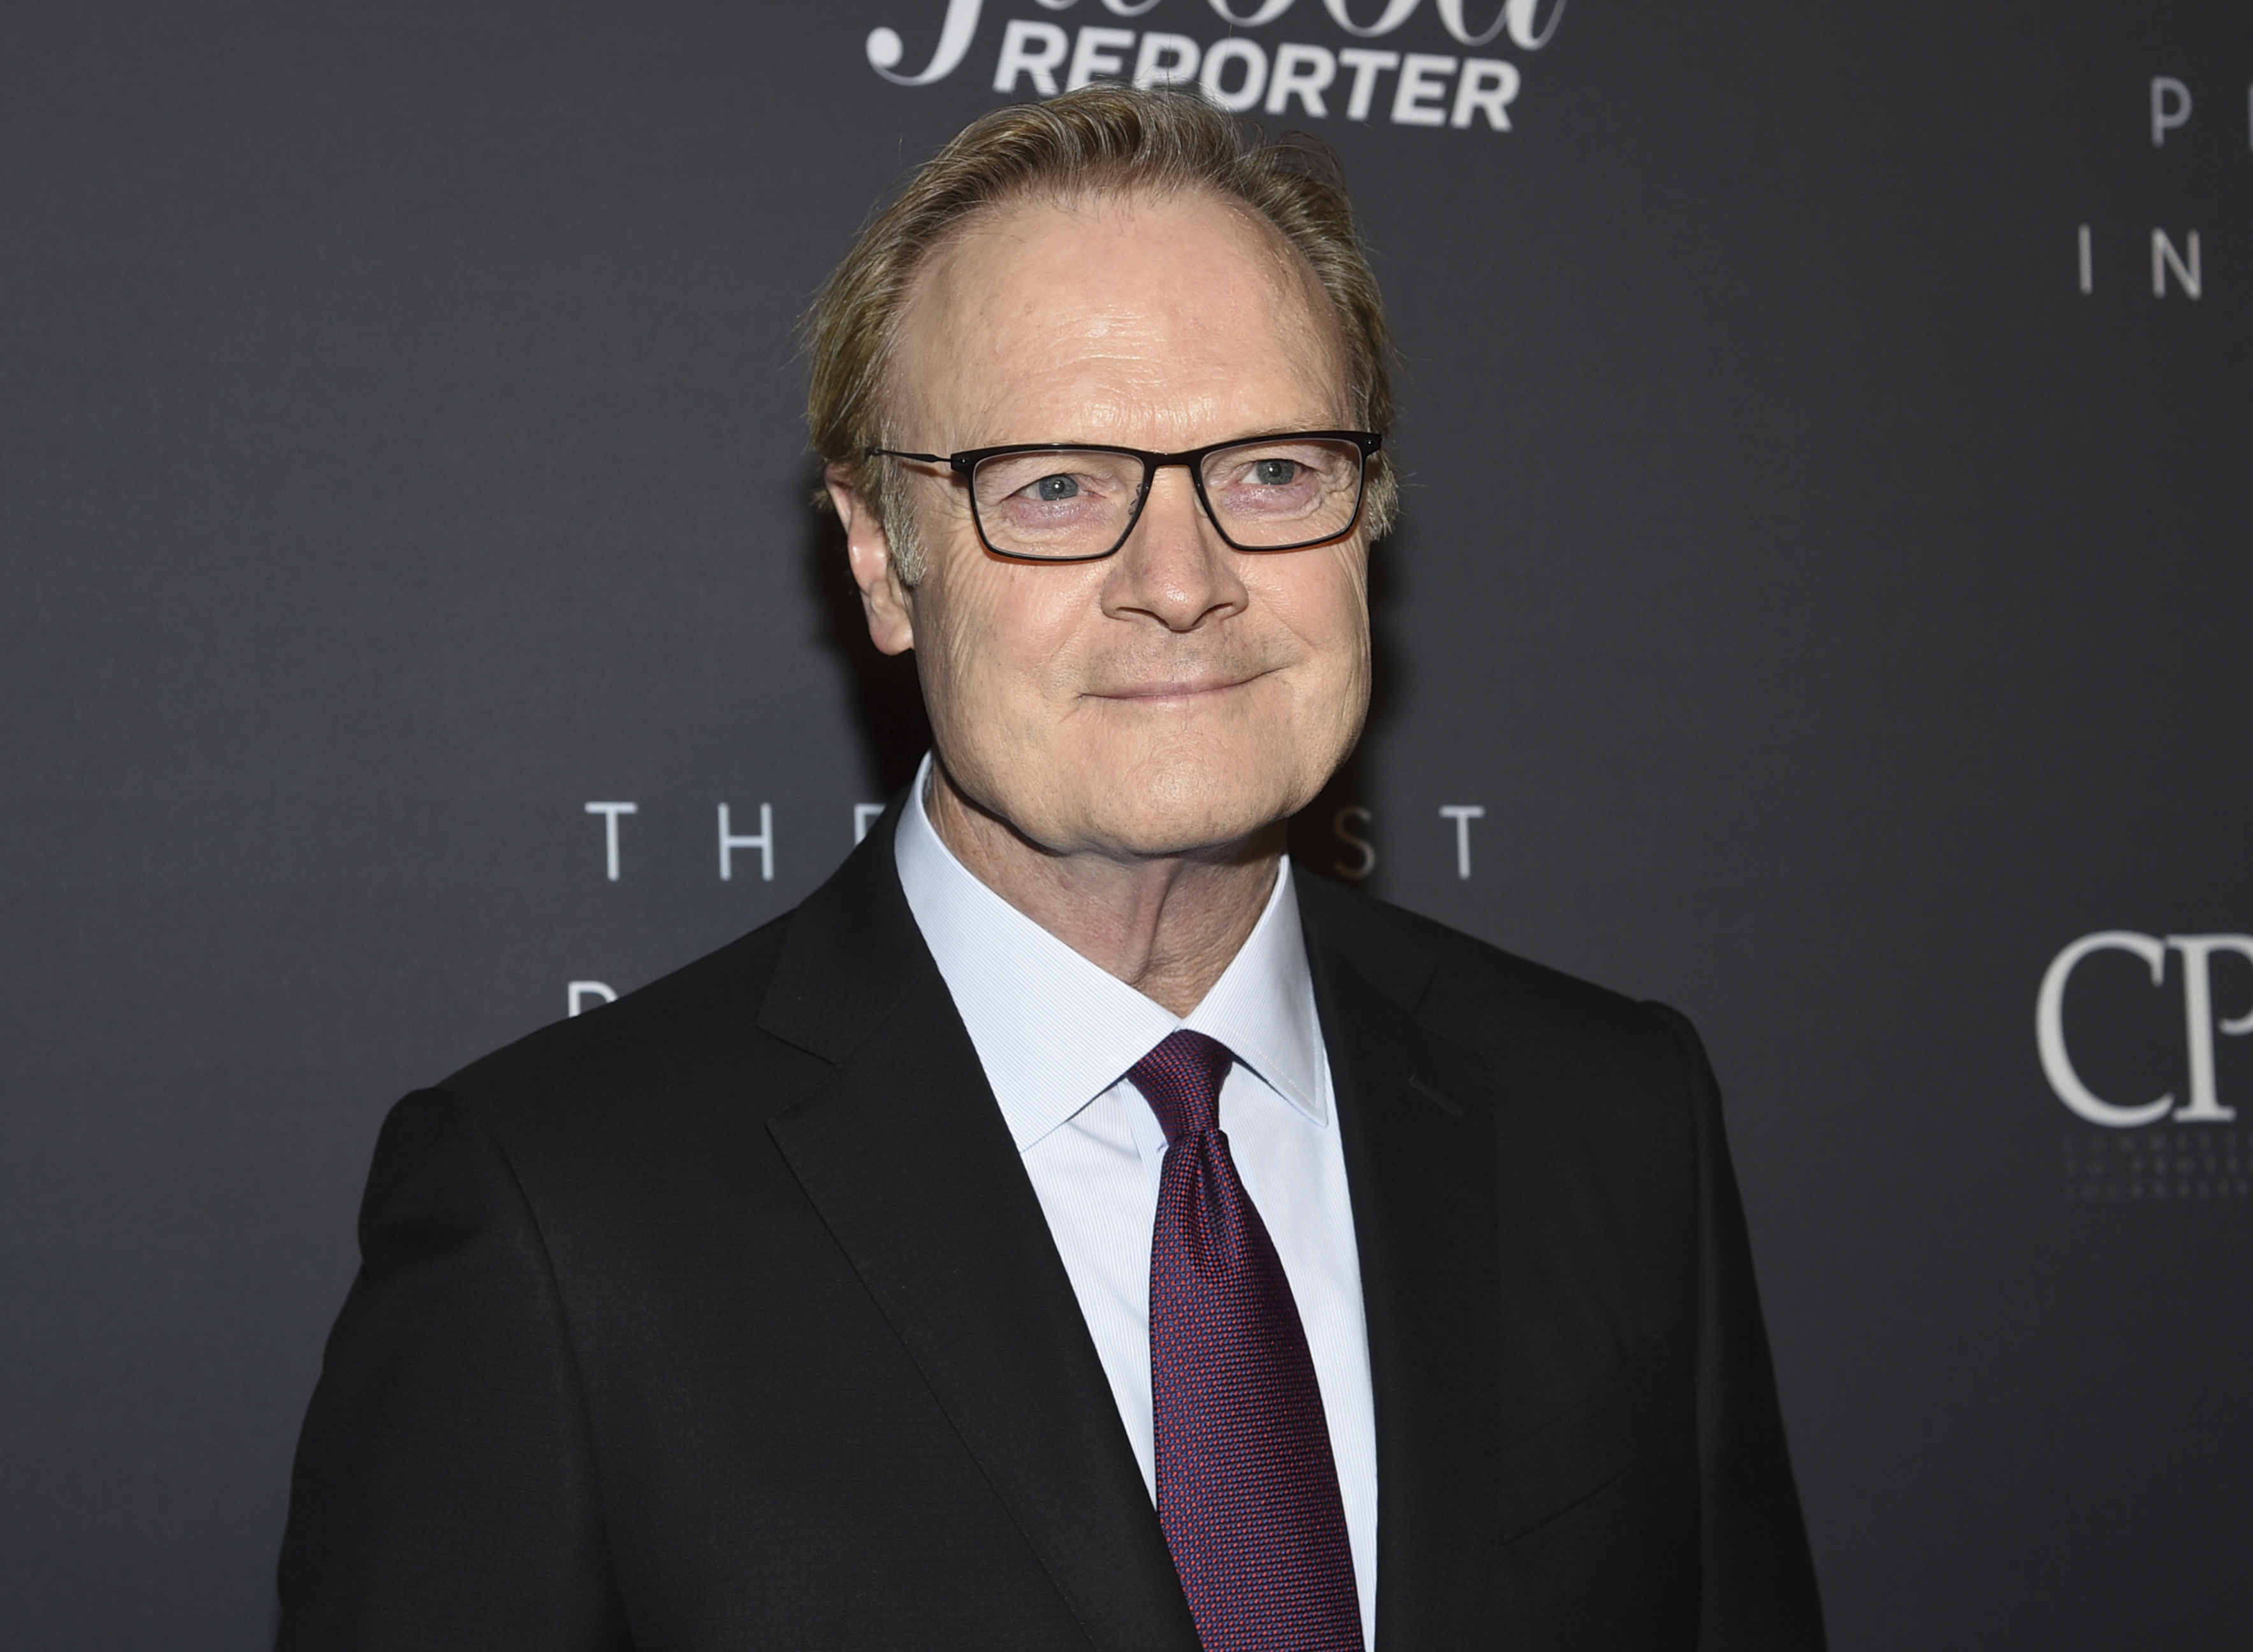 MSNBC's O'Donnell retracts Trump story